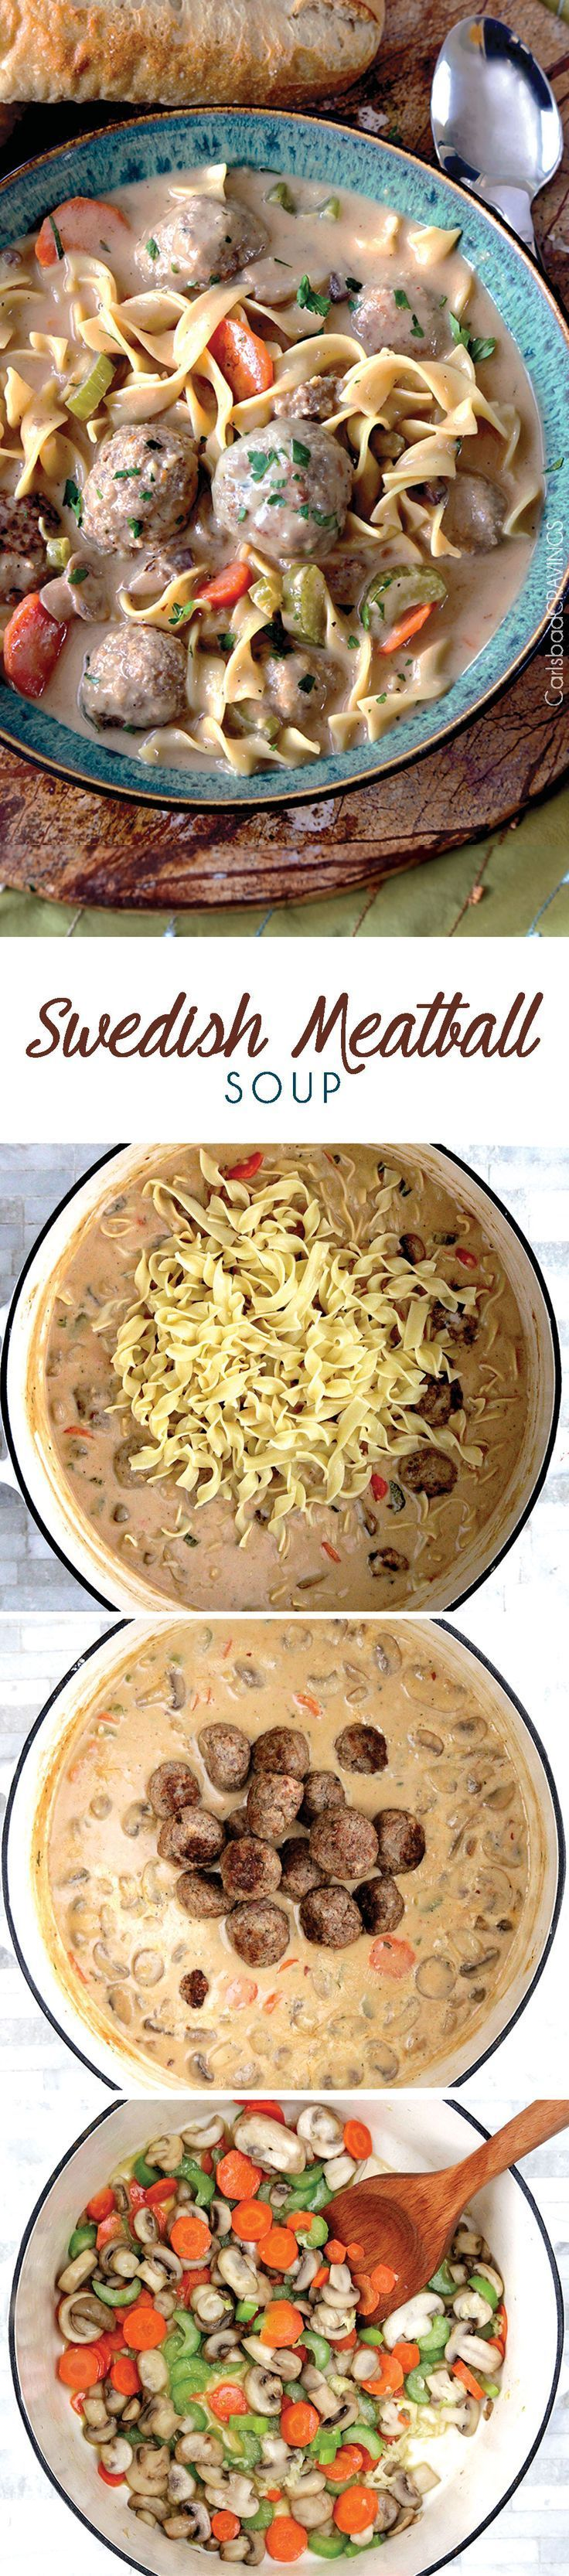 Swedish Meatball Soup Recipe | Tender, moist meatballs, hearty noodles, carrots, mushrooms and celery all swimming in luscious creamy brown gravy broth swirled with sour cream.